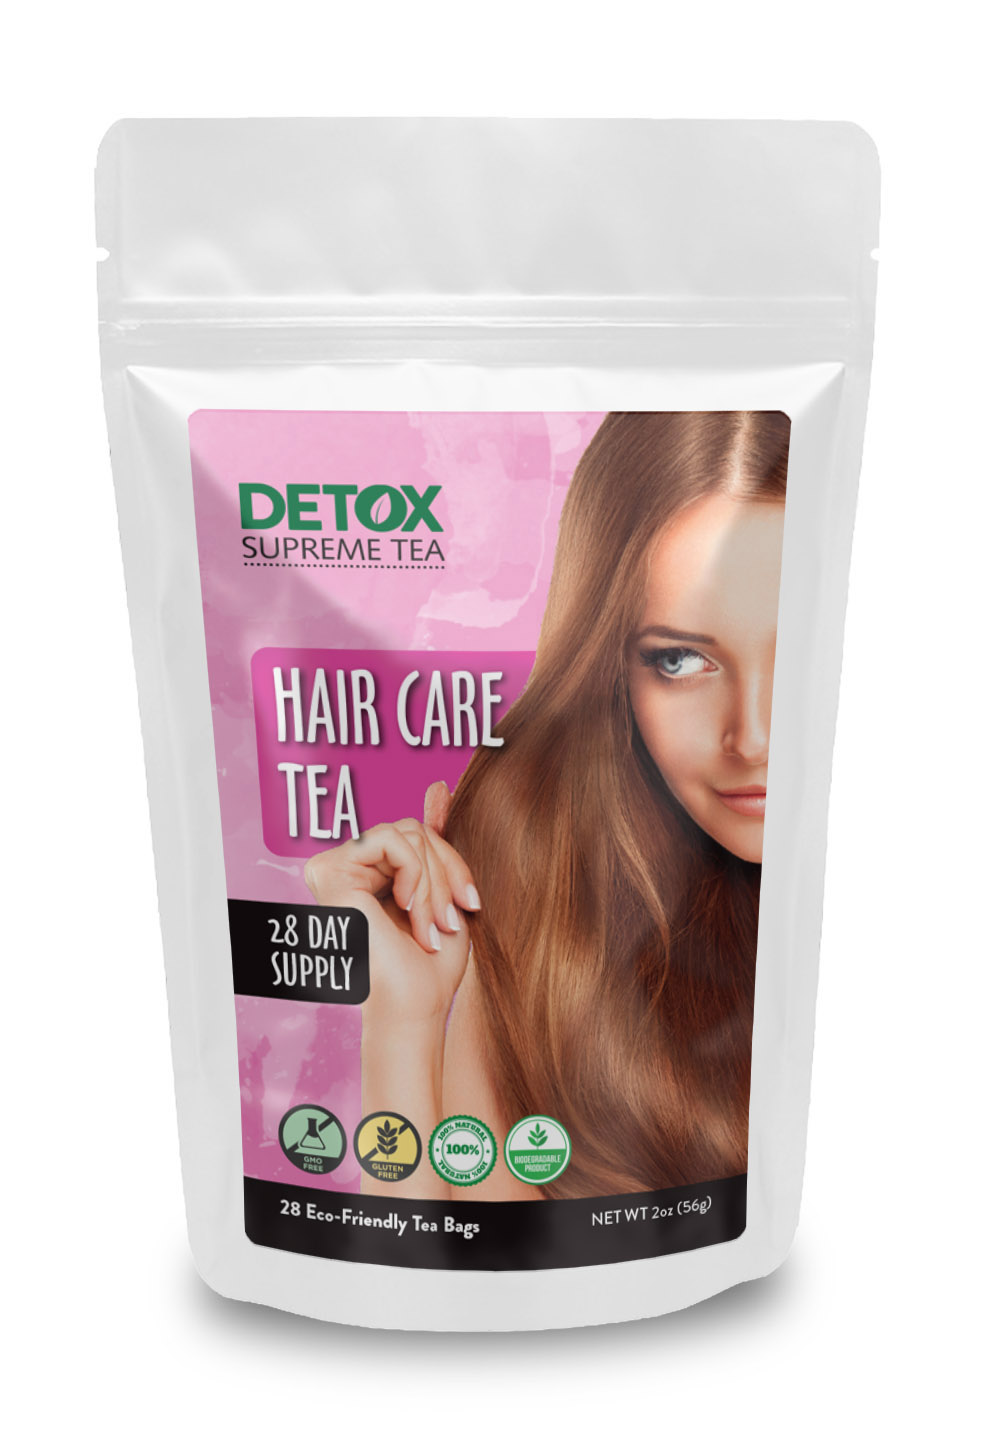 Hair Care Tea